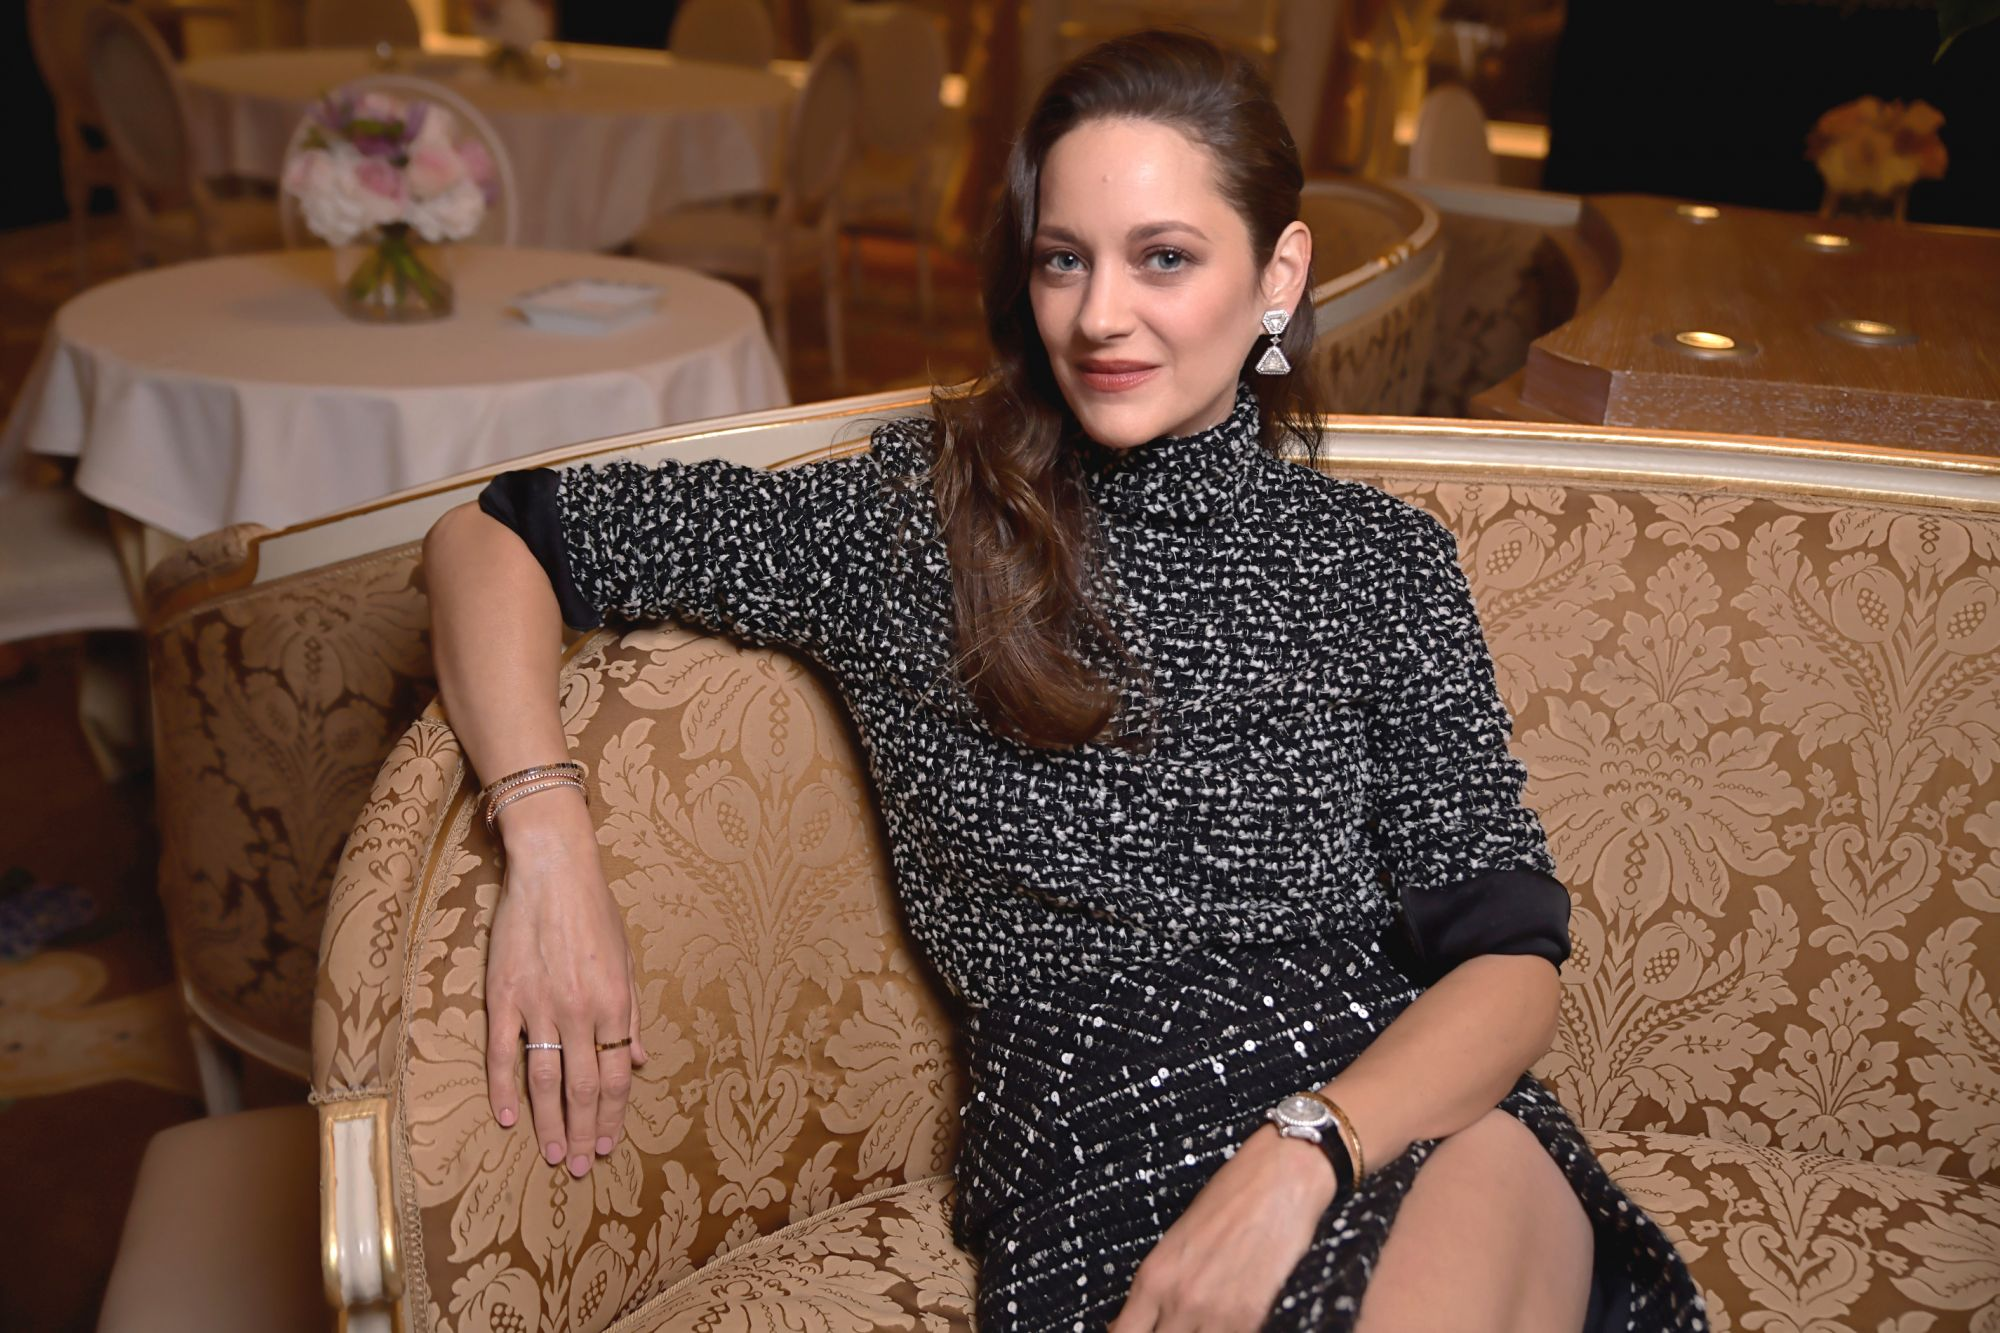 Academy Award-winning actress Marion Cotillard Chopard Marion Cotillard Ice Cube Jewelry